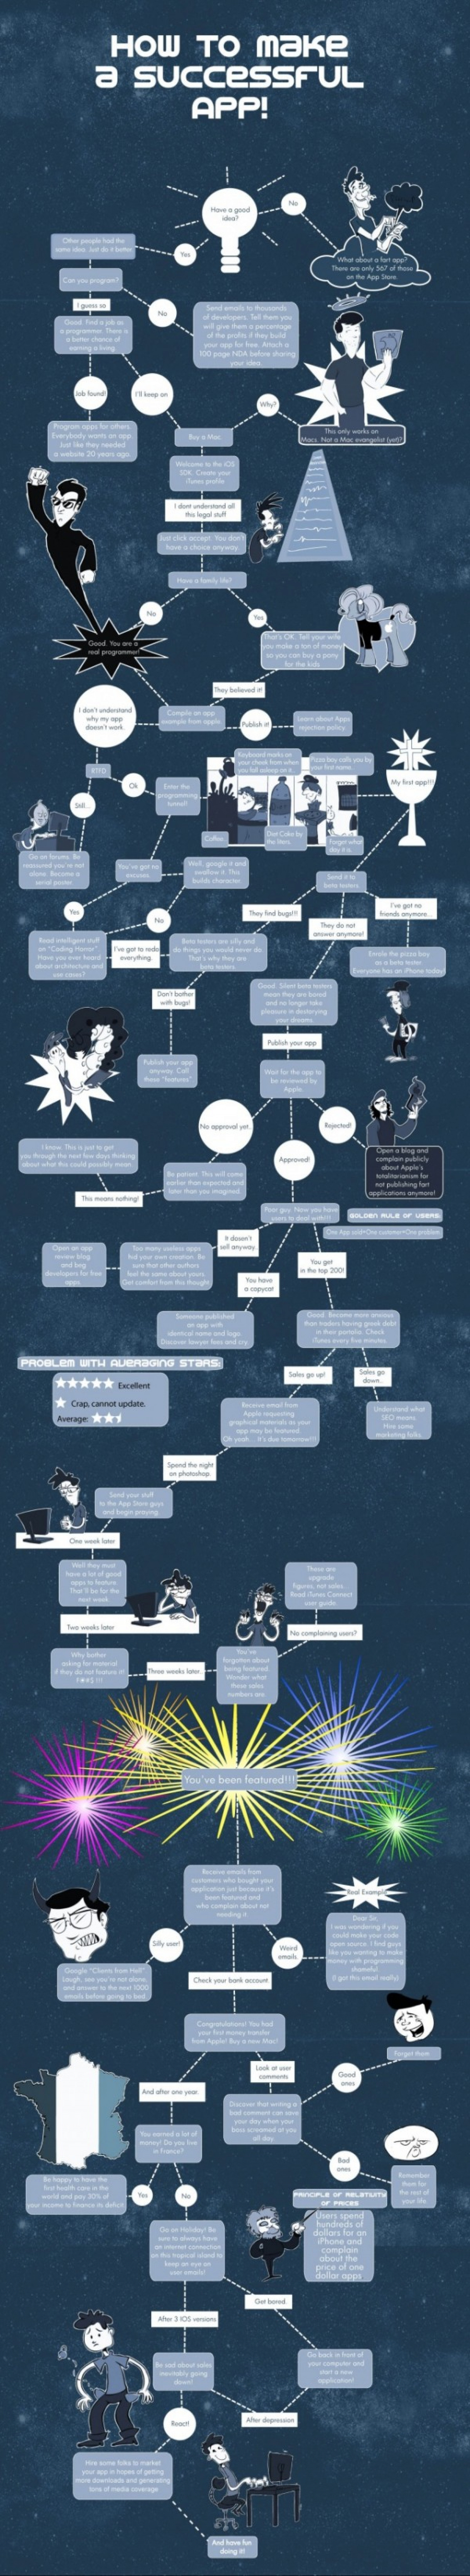 How to Make a Successful App  Infographic